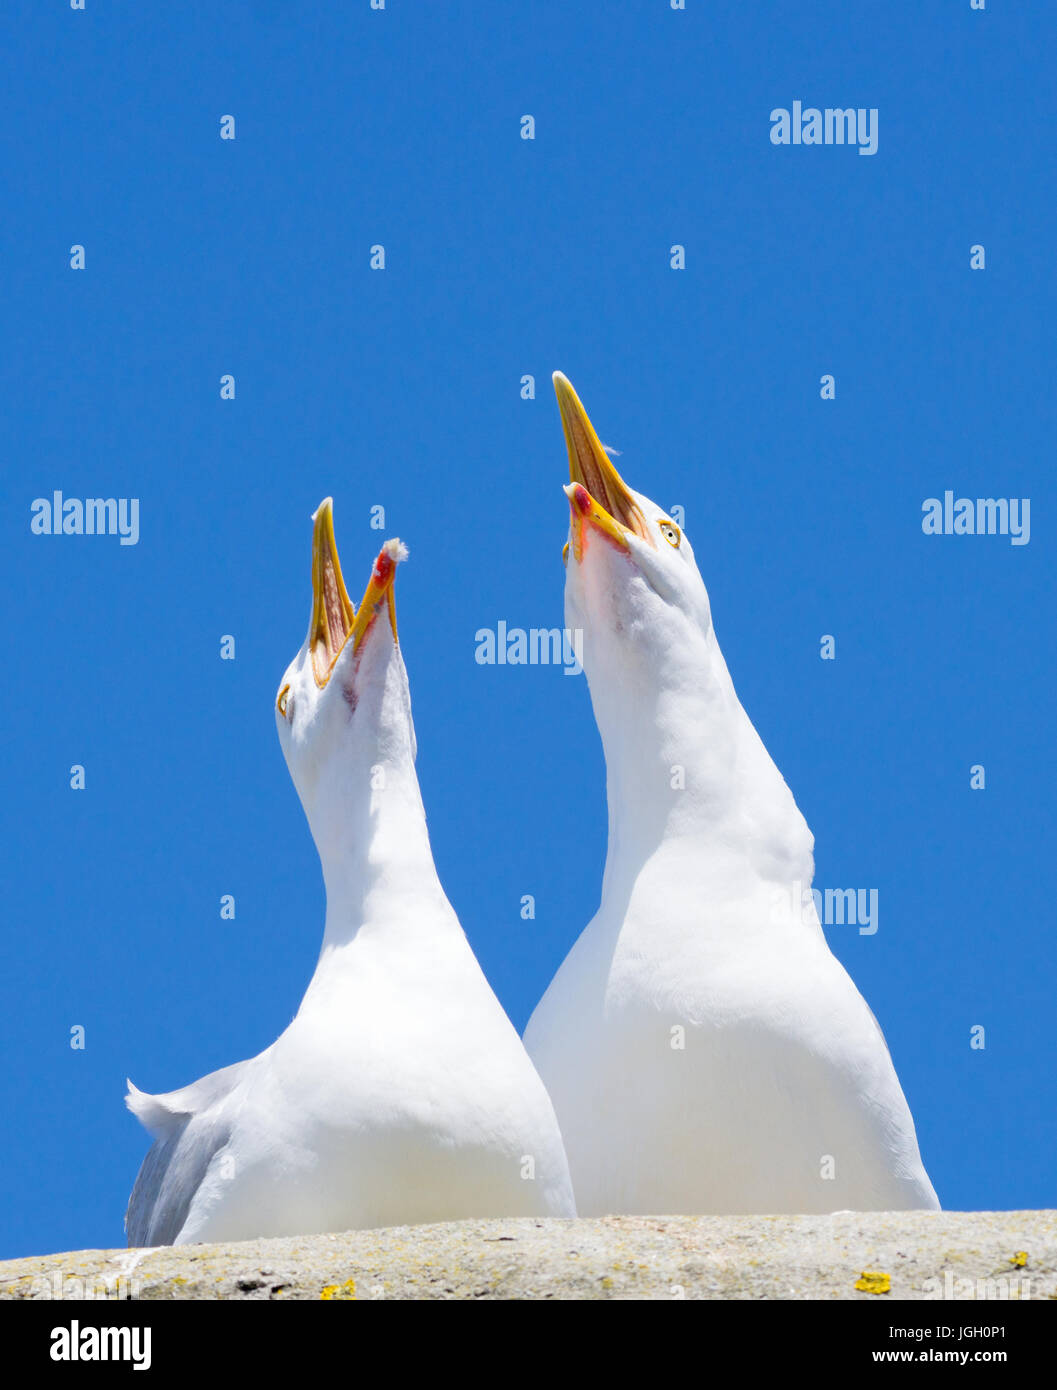 Two seagulls birds squawking loudly with big blue sky. Stock Photo